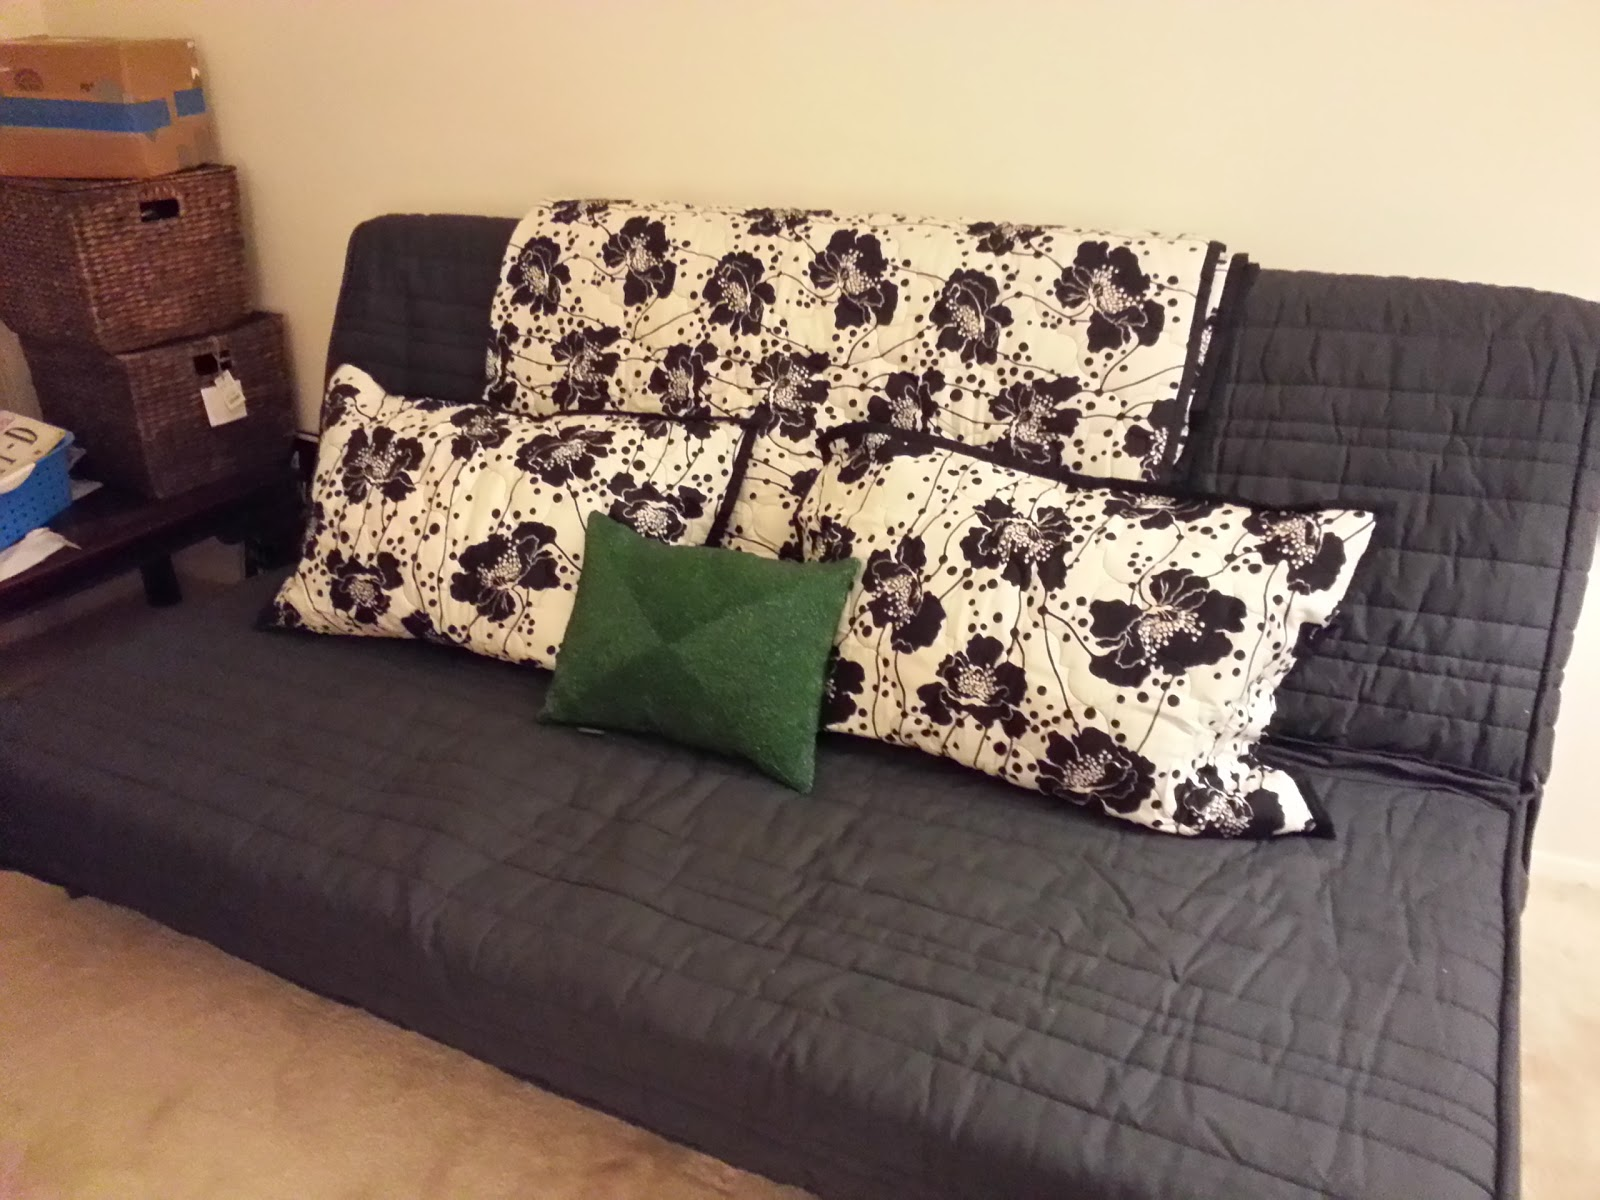 Ikea Allerum Slaapbank.Exarby Sofa Bed Ikea Review Sofa Beds Ikea Australia Ikea